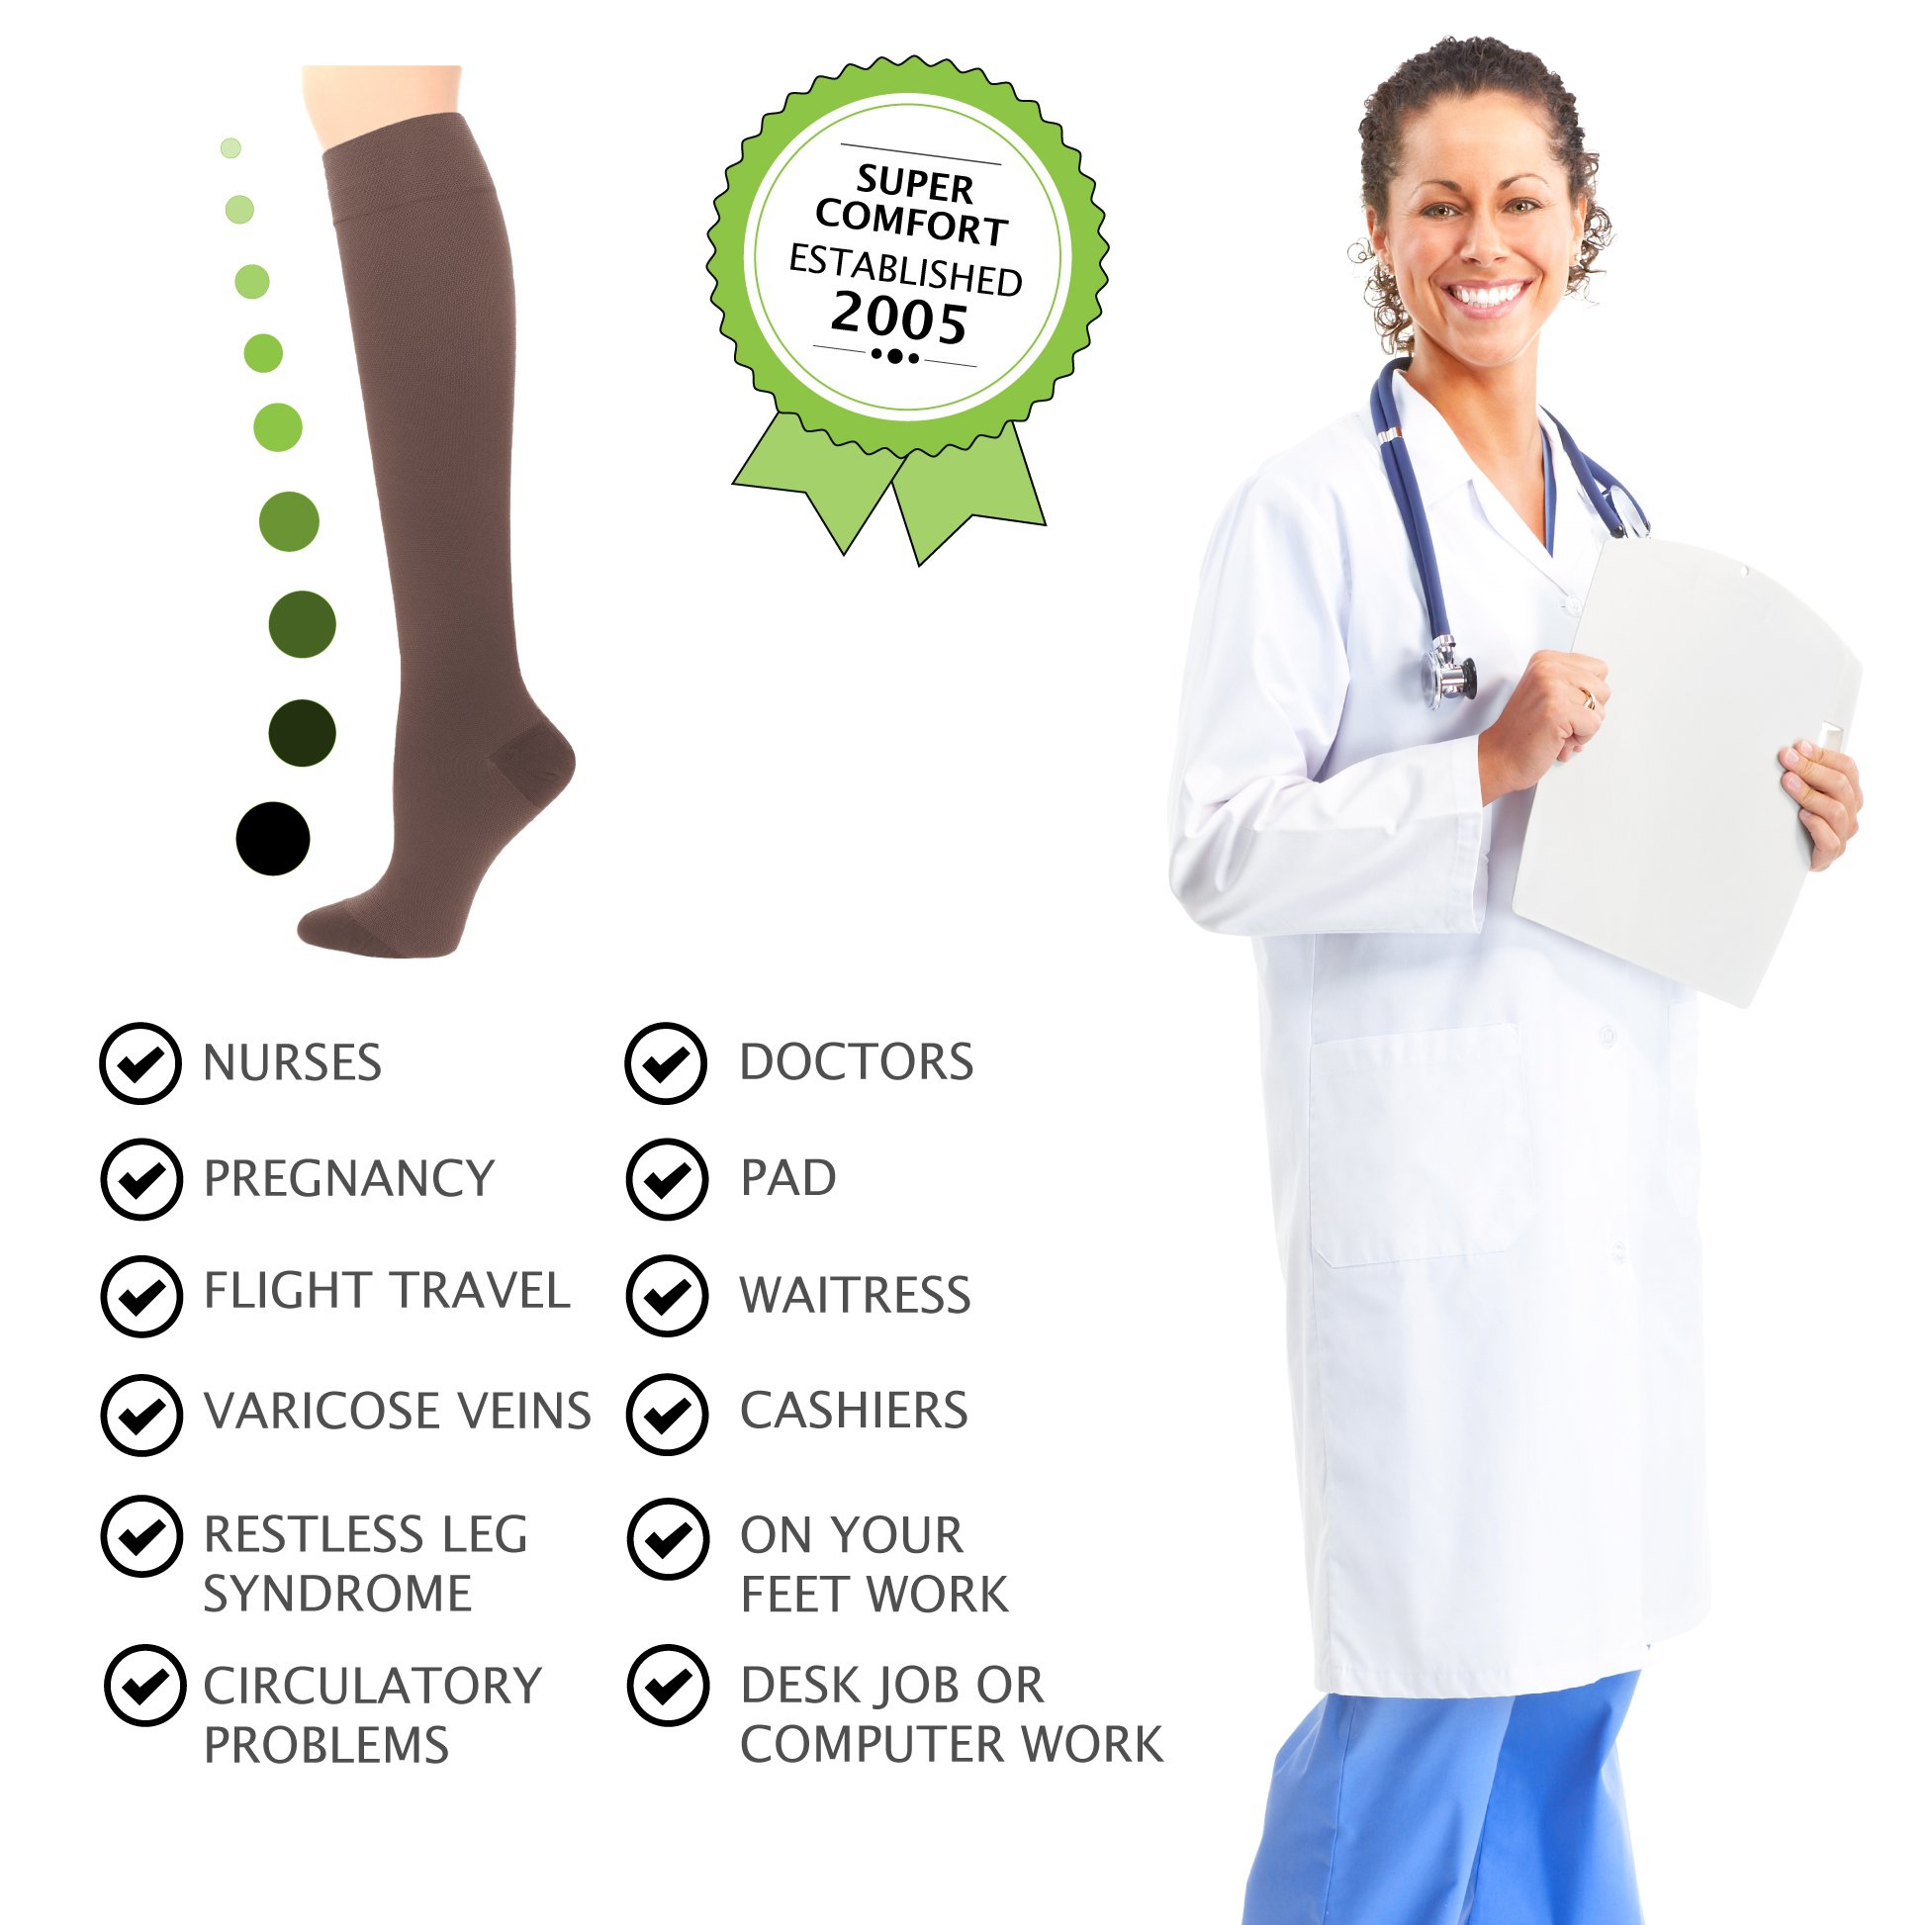 Compression Socks | Womens Brown Stockings (1 pair) | 15-20 mmHg Graduated | Sock Size 9-11 | Improve Foot Health Comfort Circulation for Nurses, Diabetes, Varicose Veins, Travel, Pregnancy